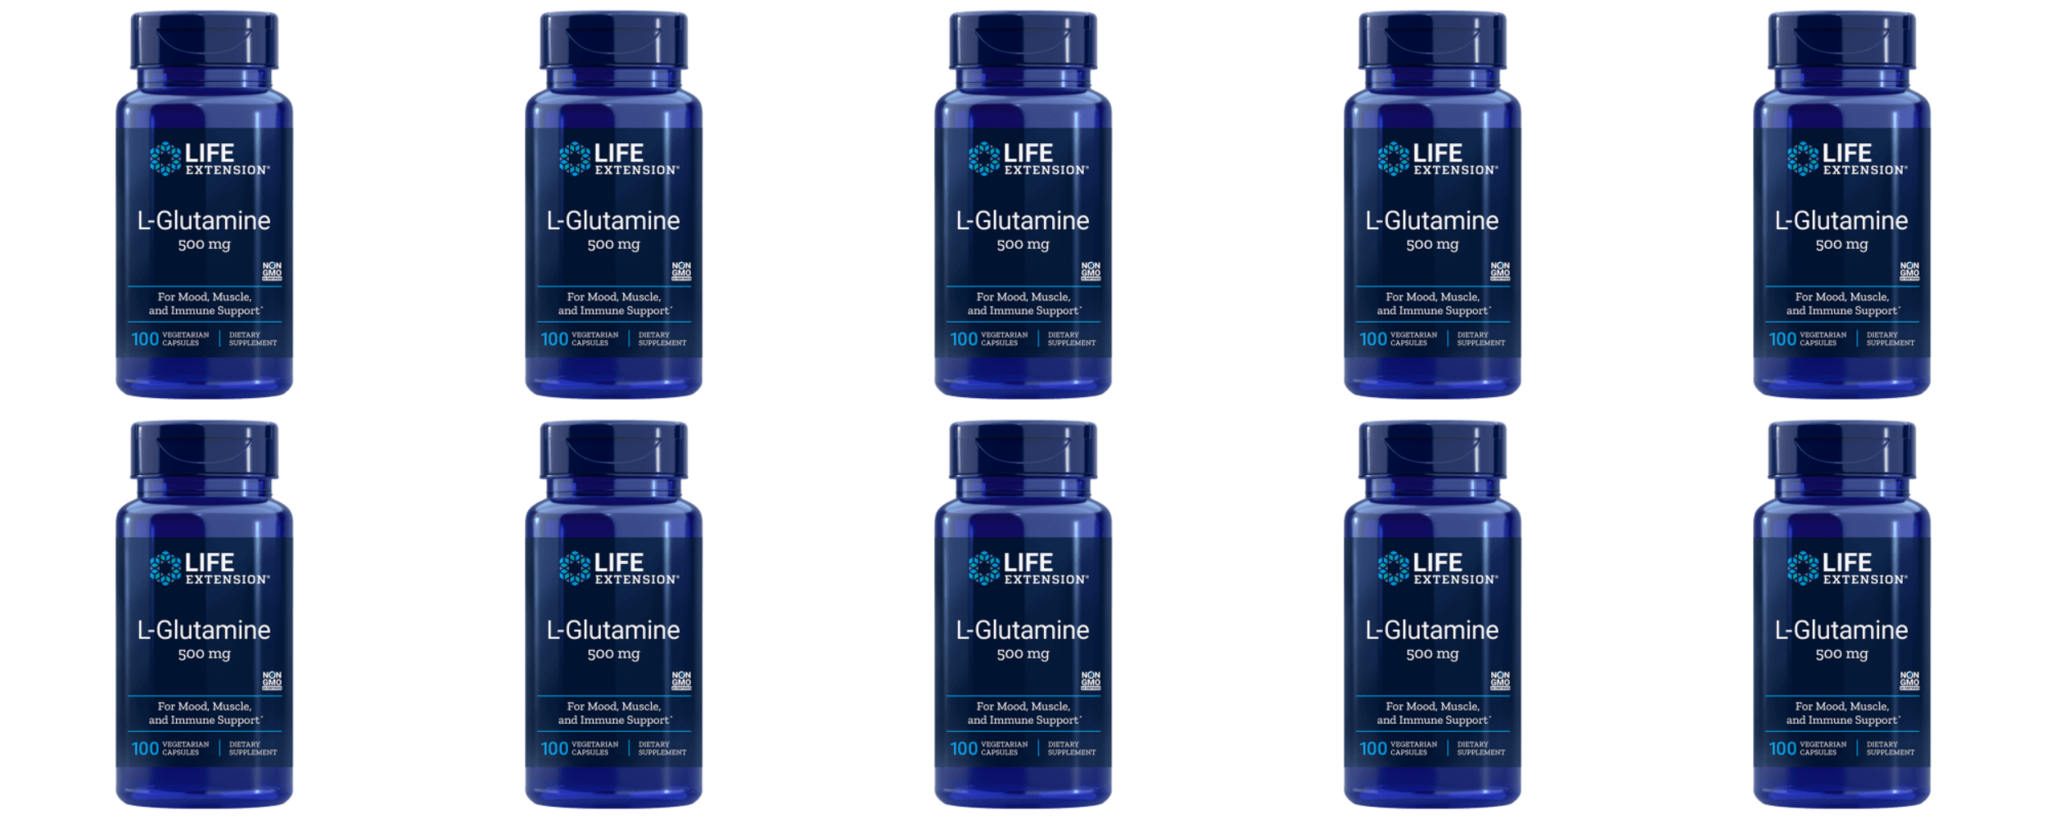 Life Extension L-Glutamine, 500 Mg 100 Capsules, 10-pack